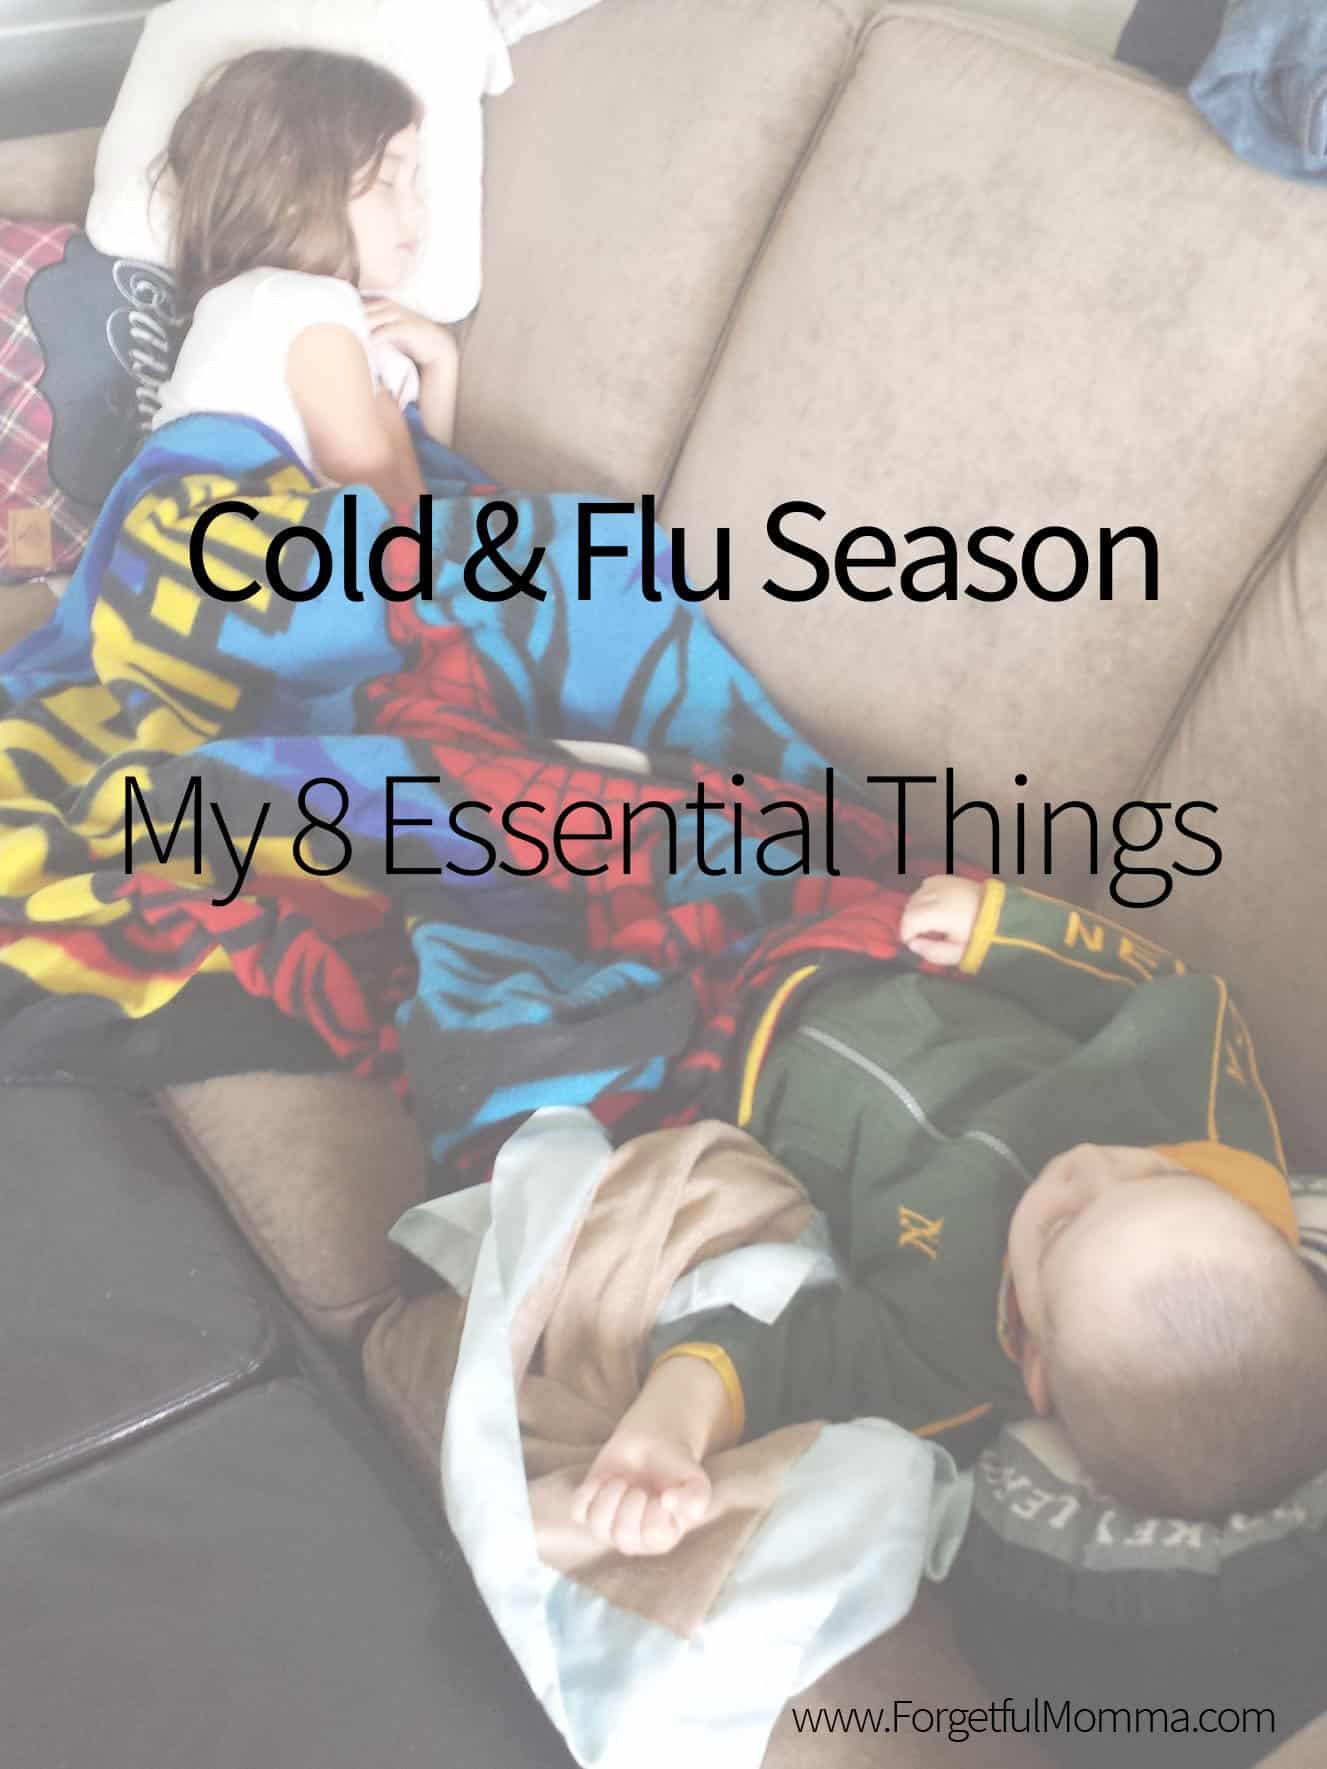 cold and flu season - my 8 essentials things